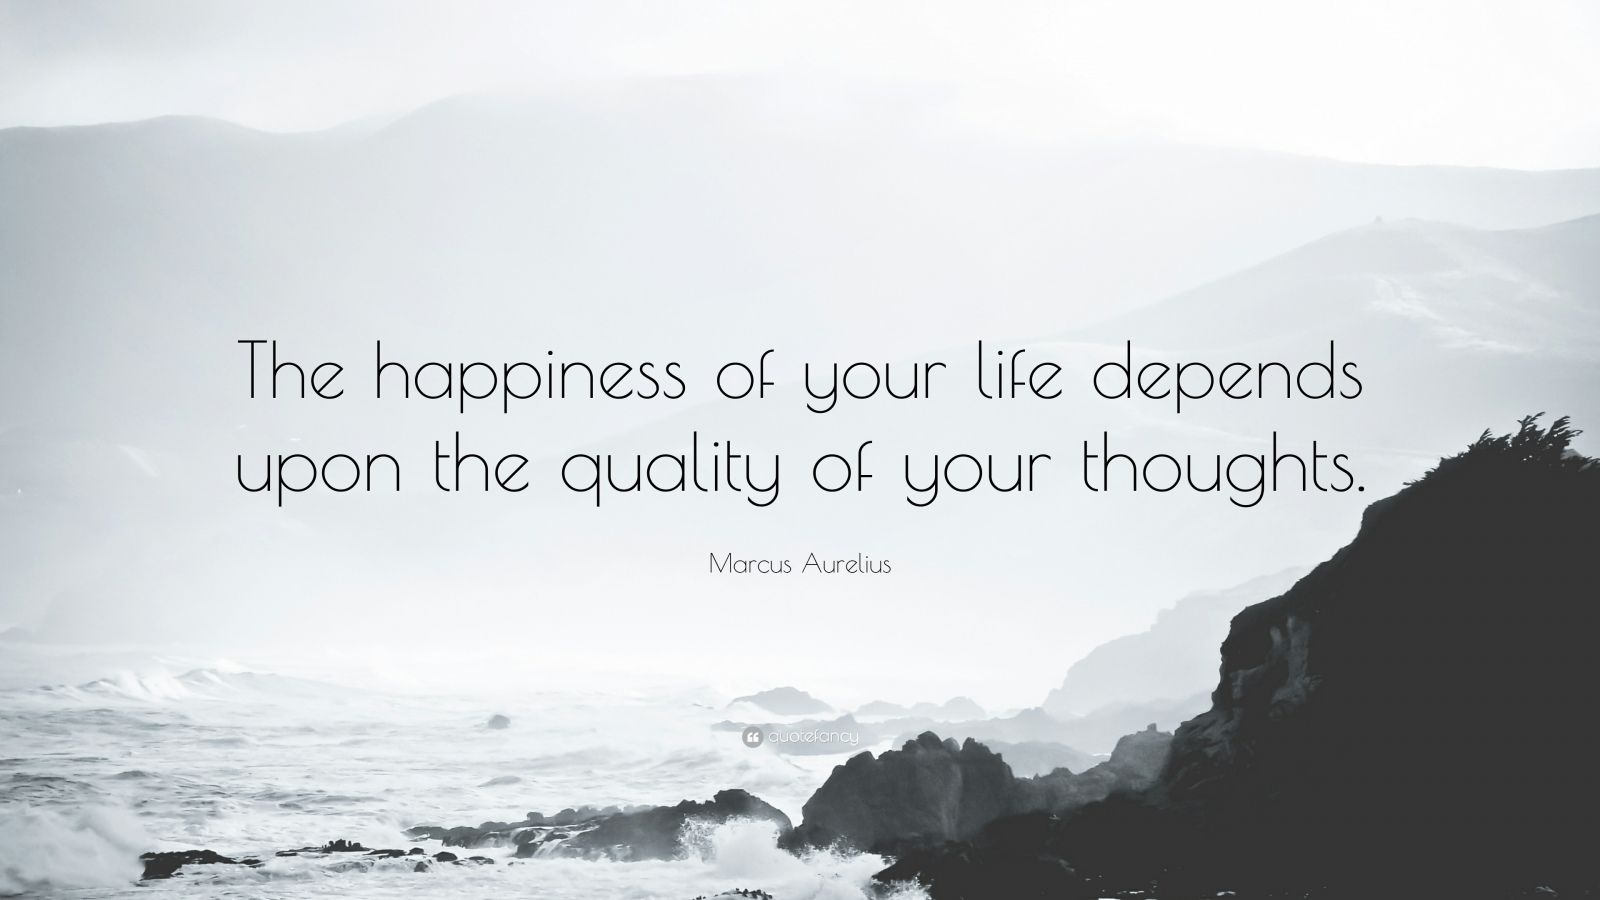 [Image] Marcus Aurelius on Happiness